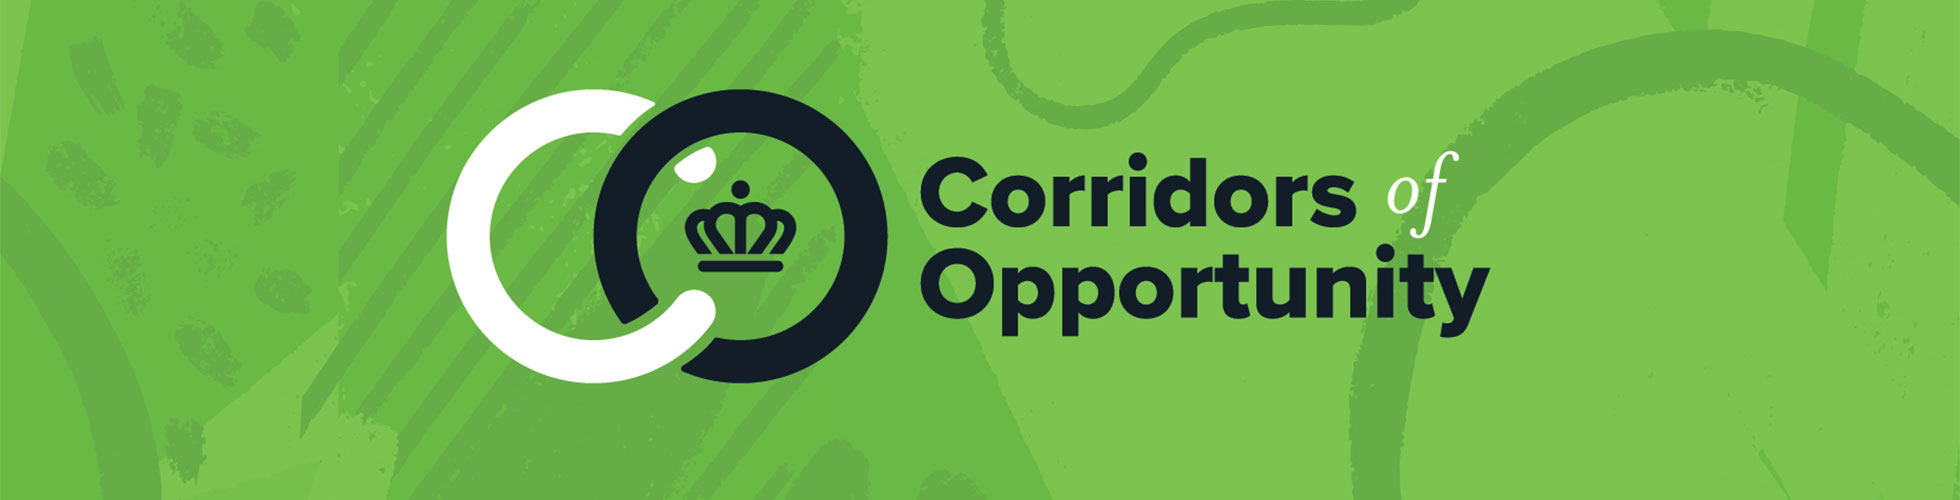 Corridors of Opportunity